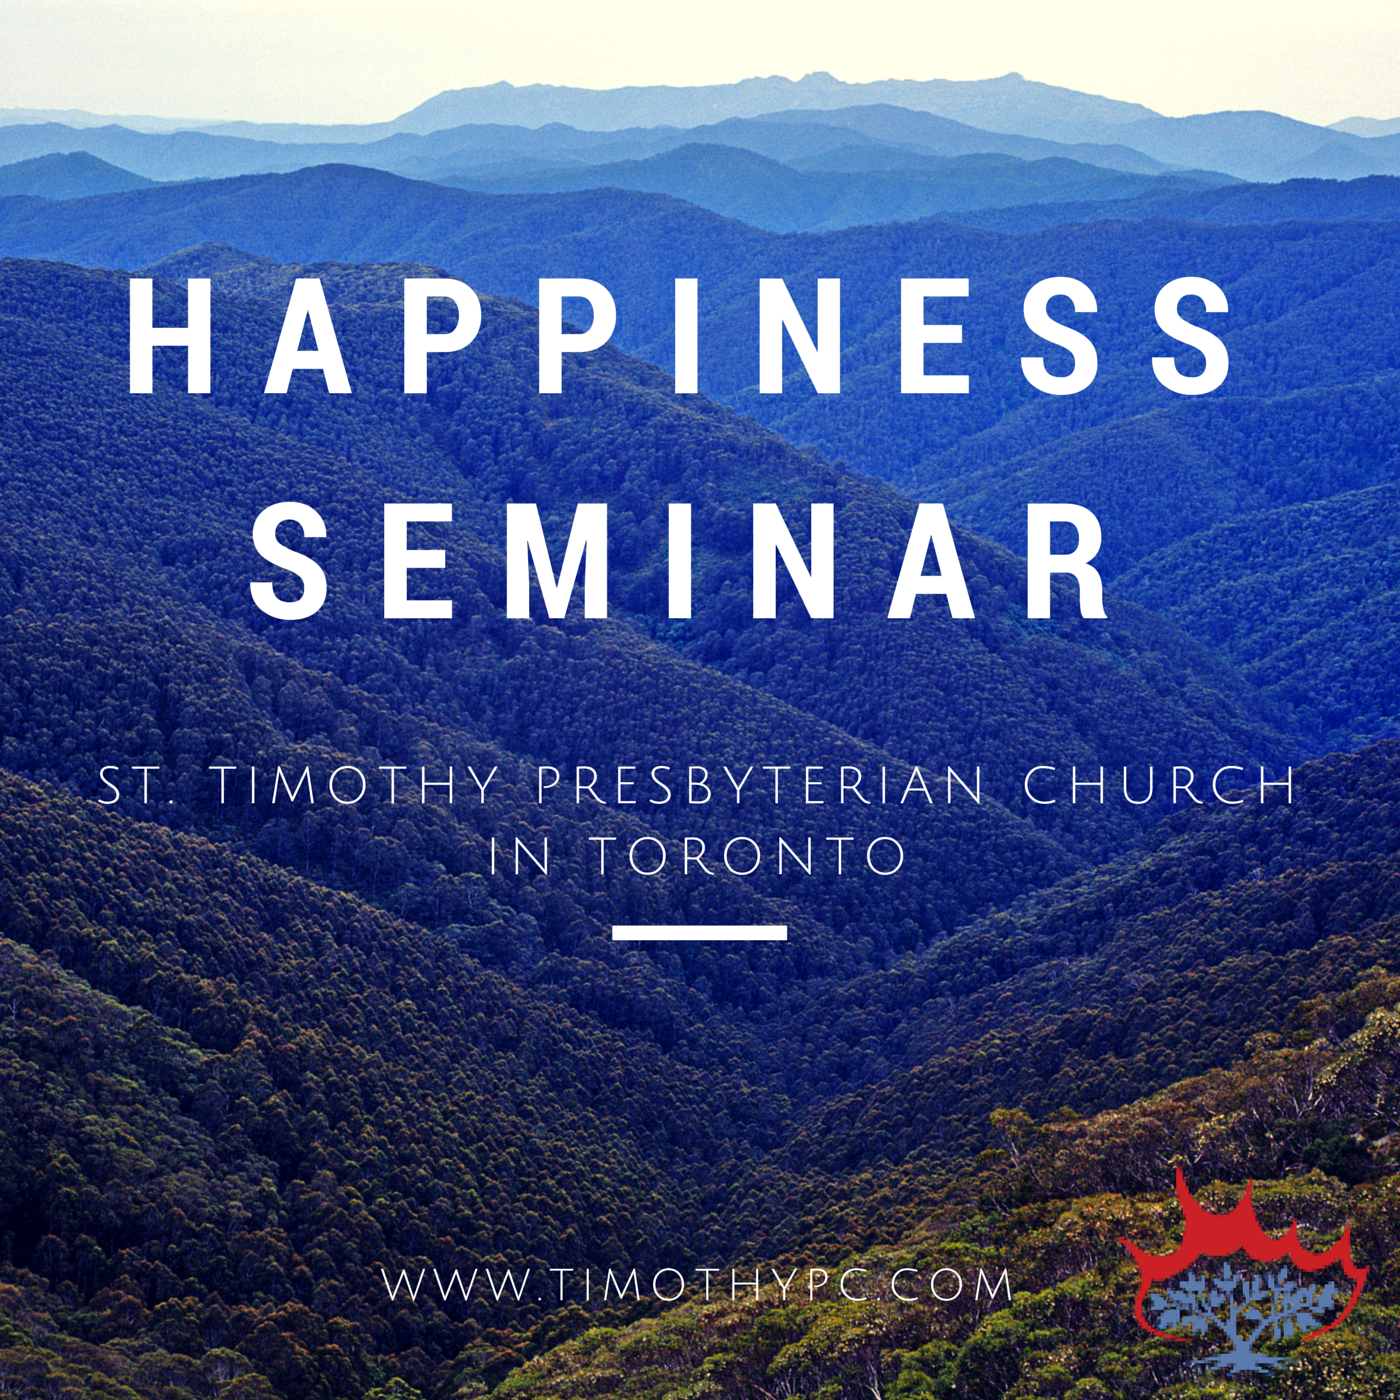 St Timothy Presbyterian Church in Toronto: The Pursuit of Happiness